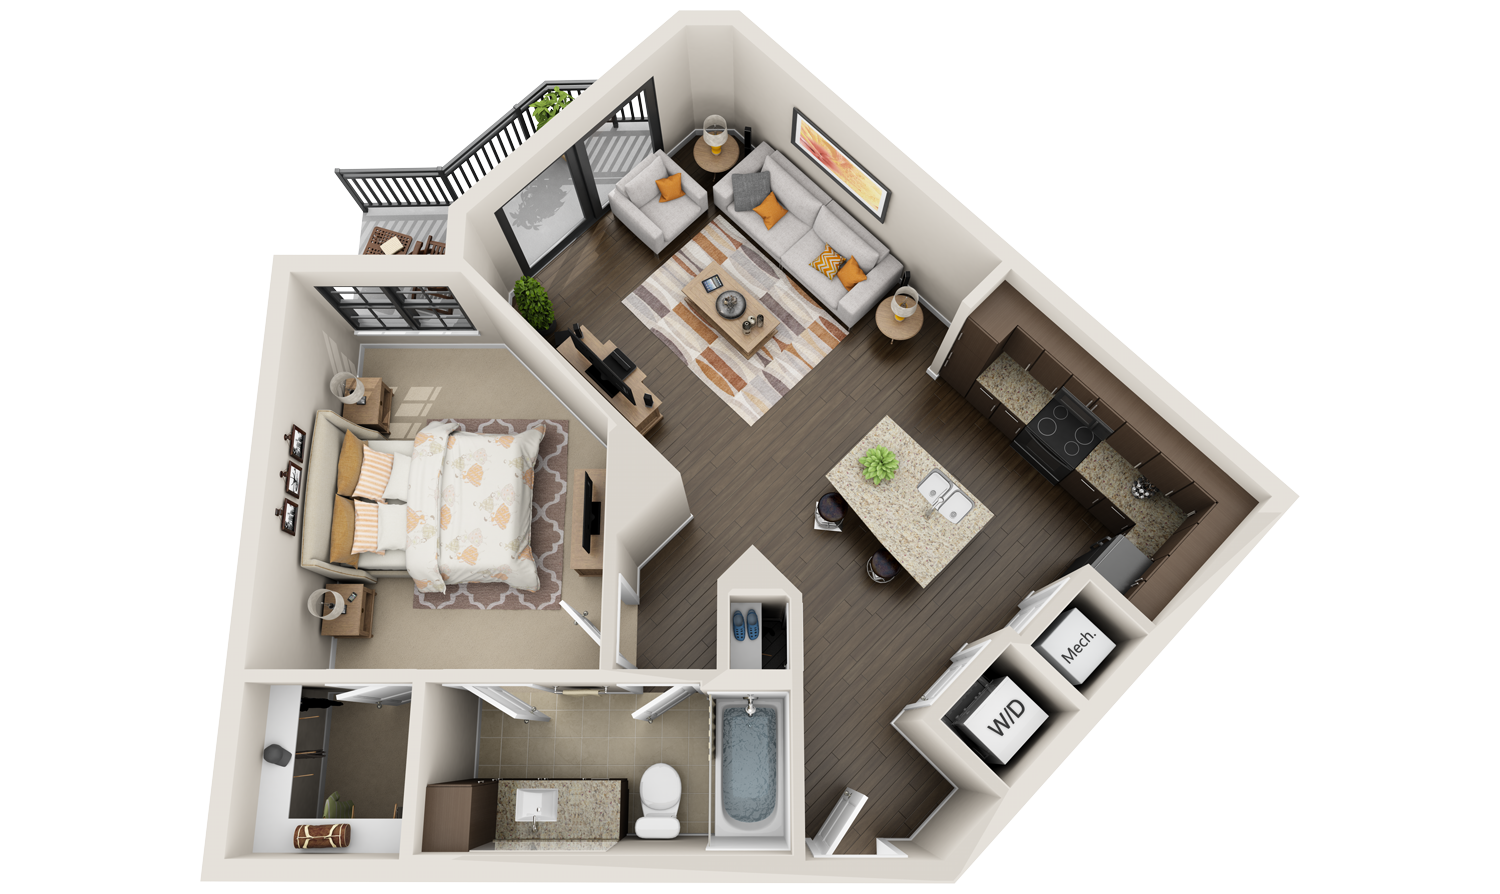 3d floor plans for apartments that look real for Apartment design 3d